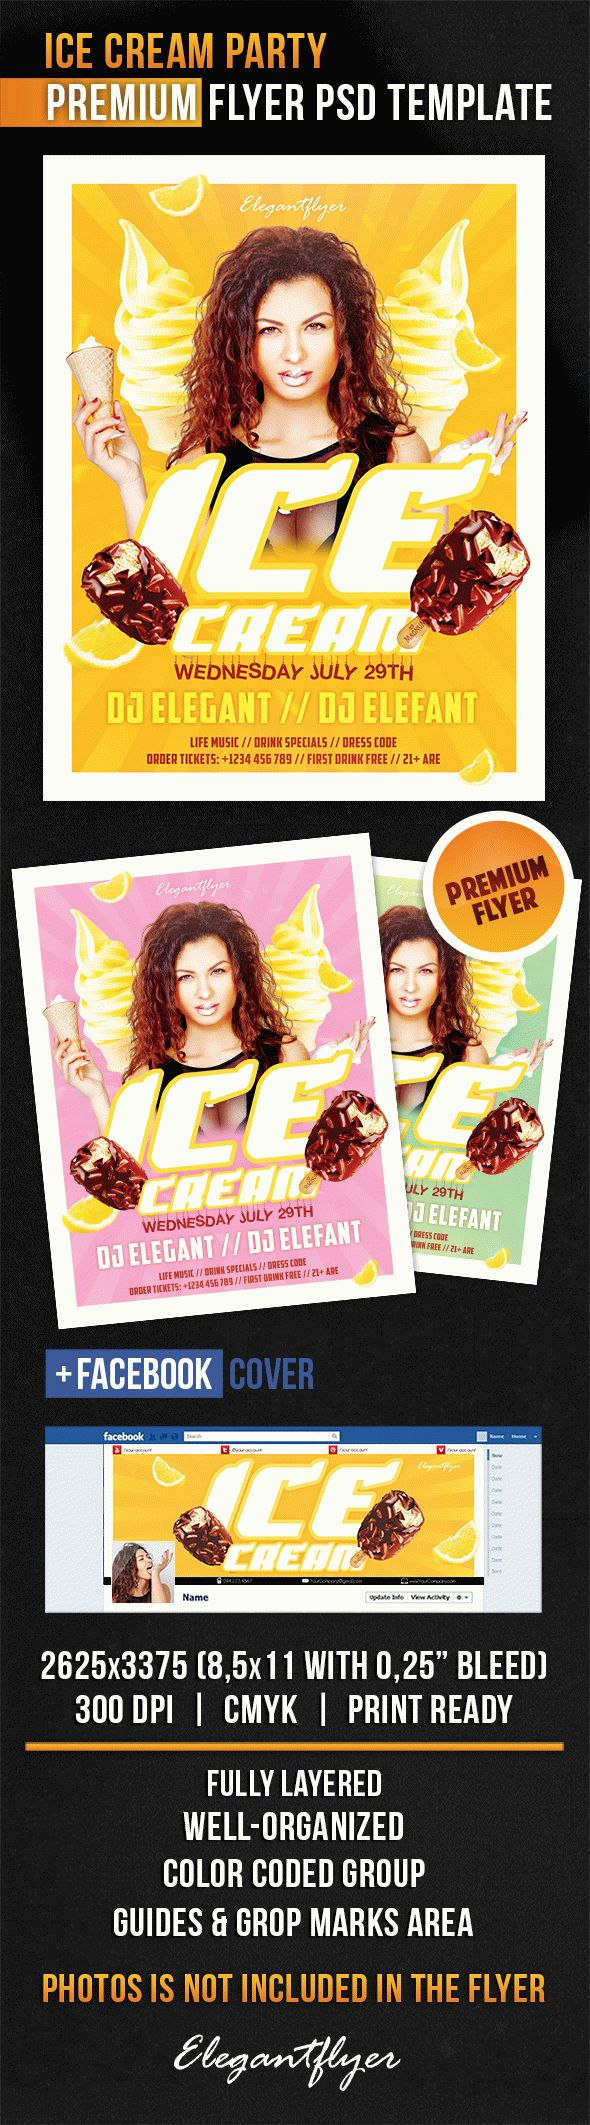 Flyer For Ice Cream Party